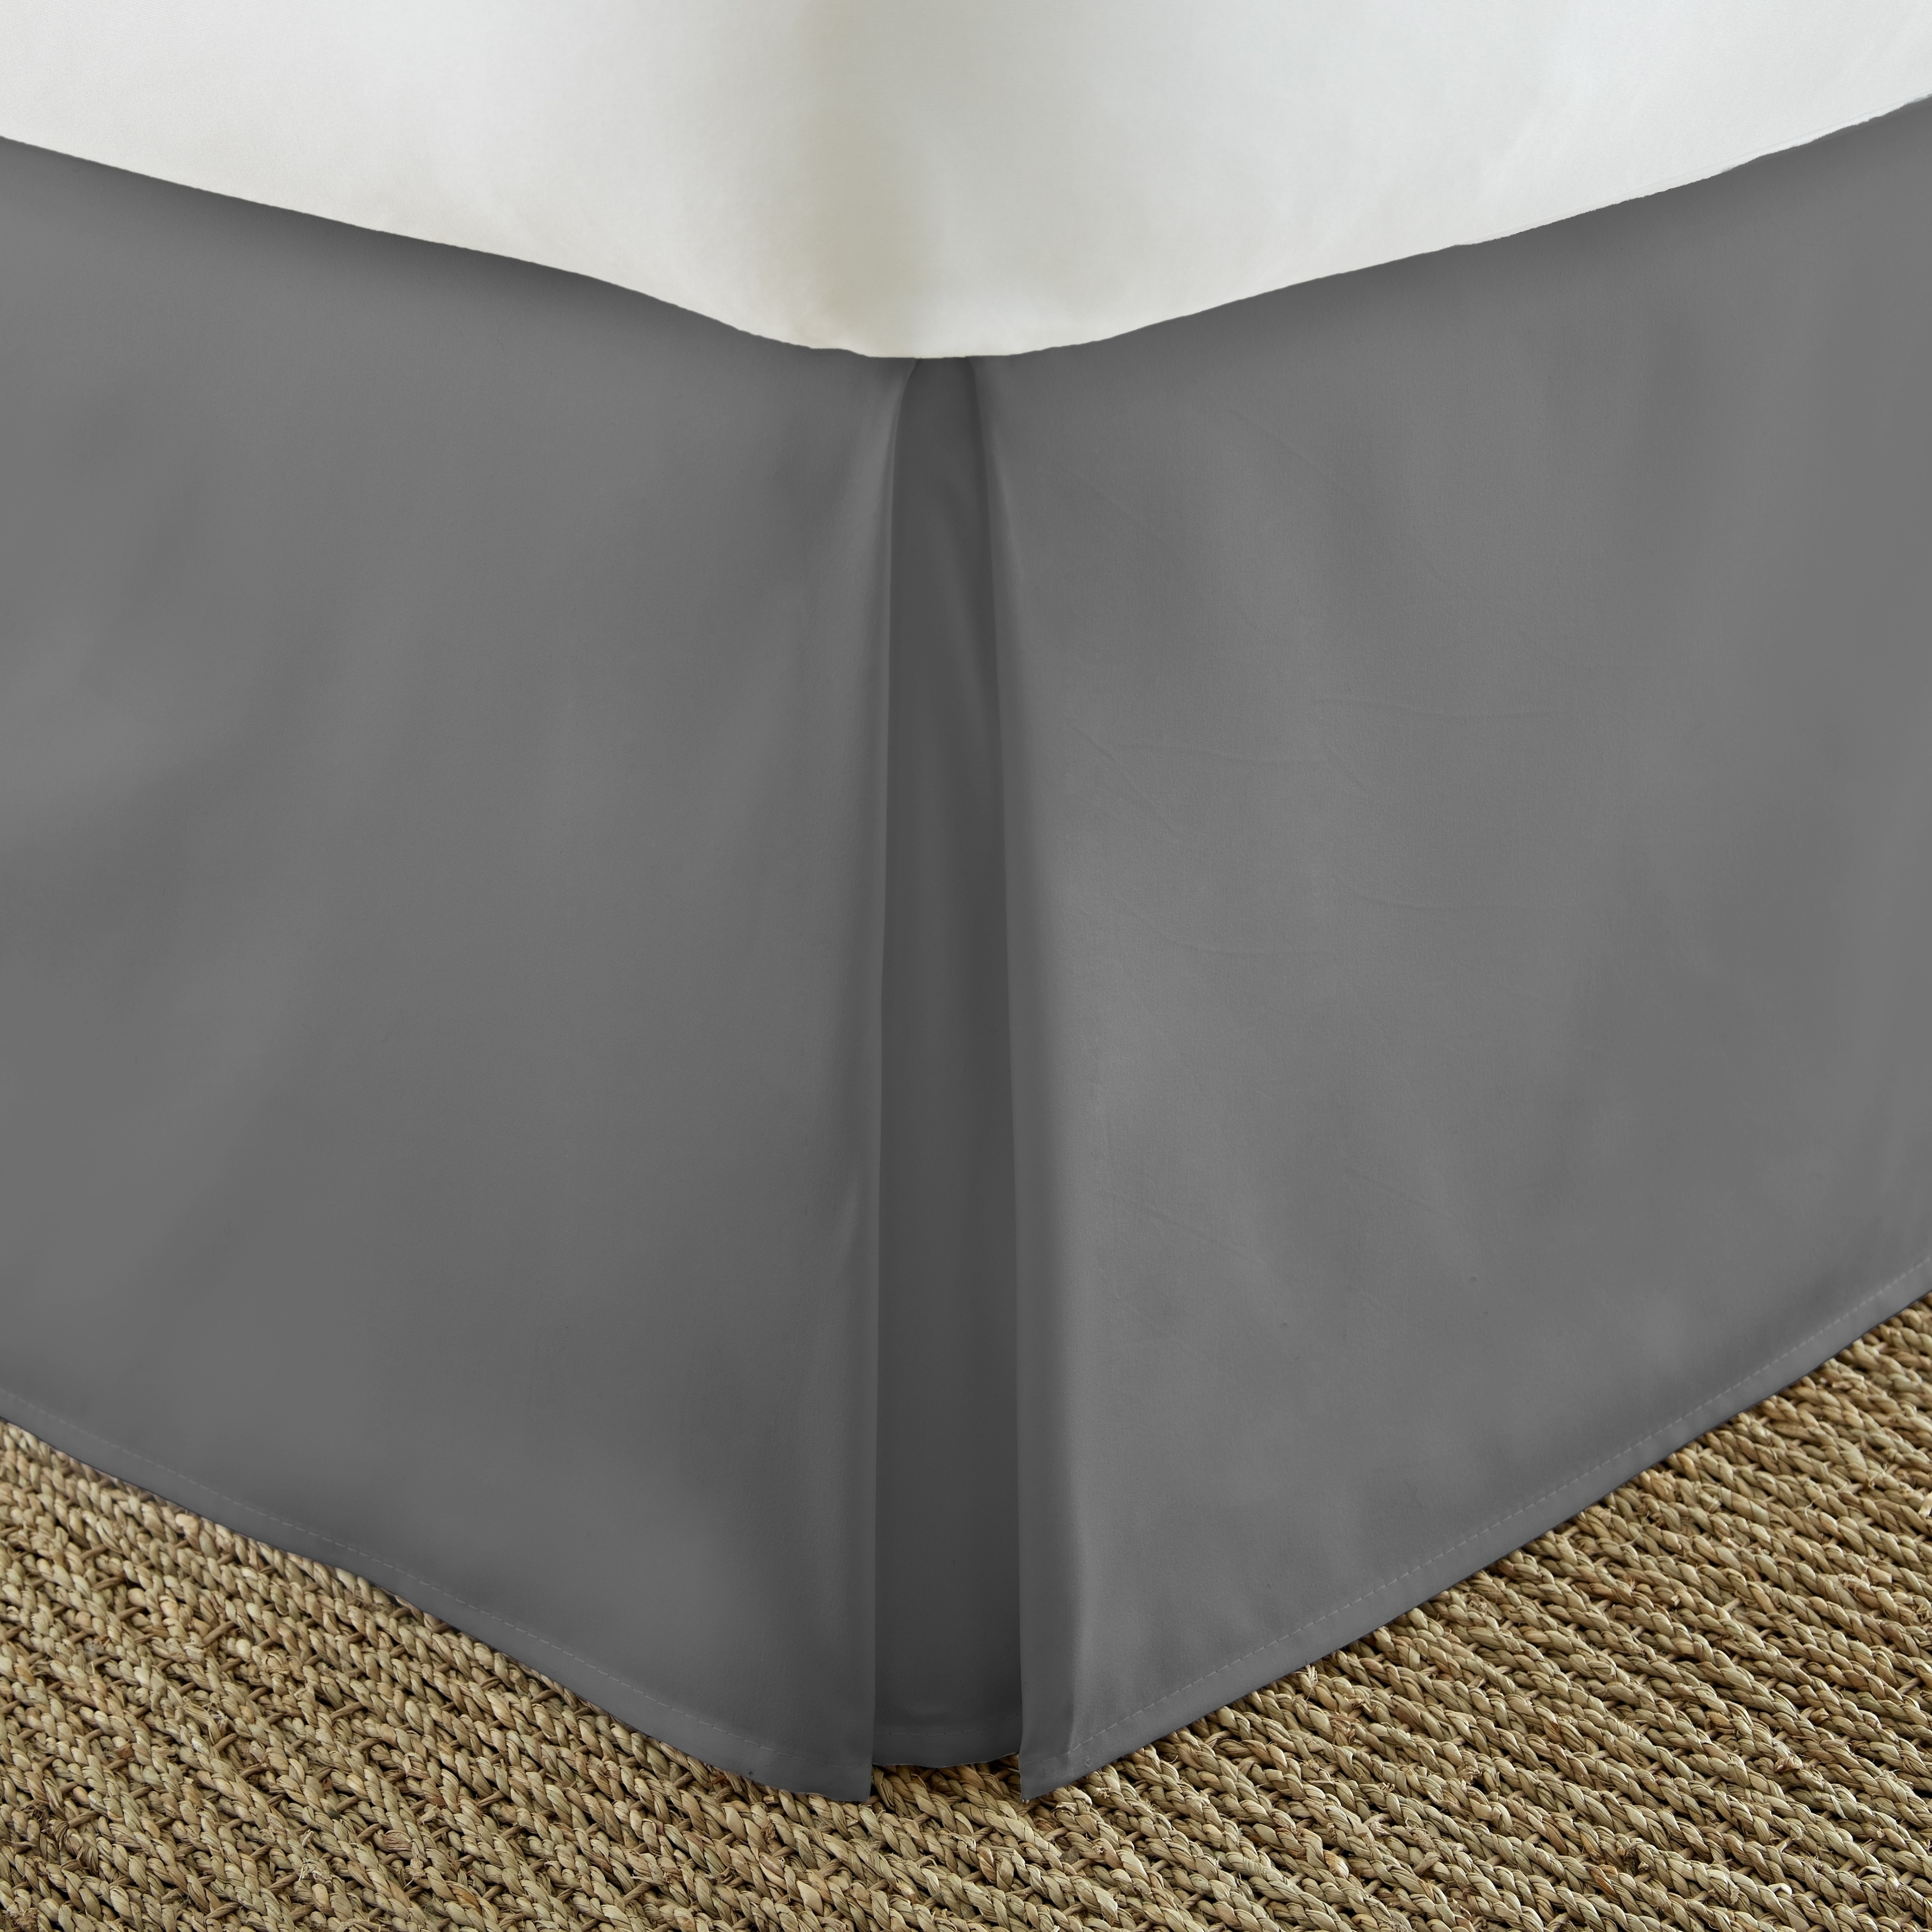 Porch Den Virginia Highland Cooledge Pleated 14 Inch Drop Bedskirt On Free Shipping Orders Over 45 19424544